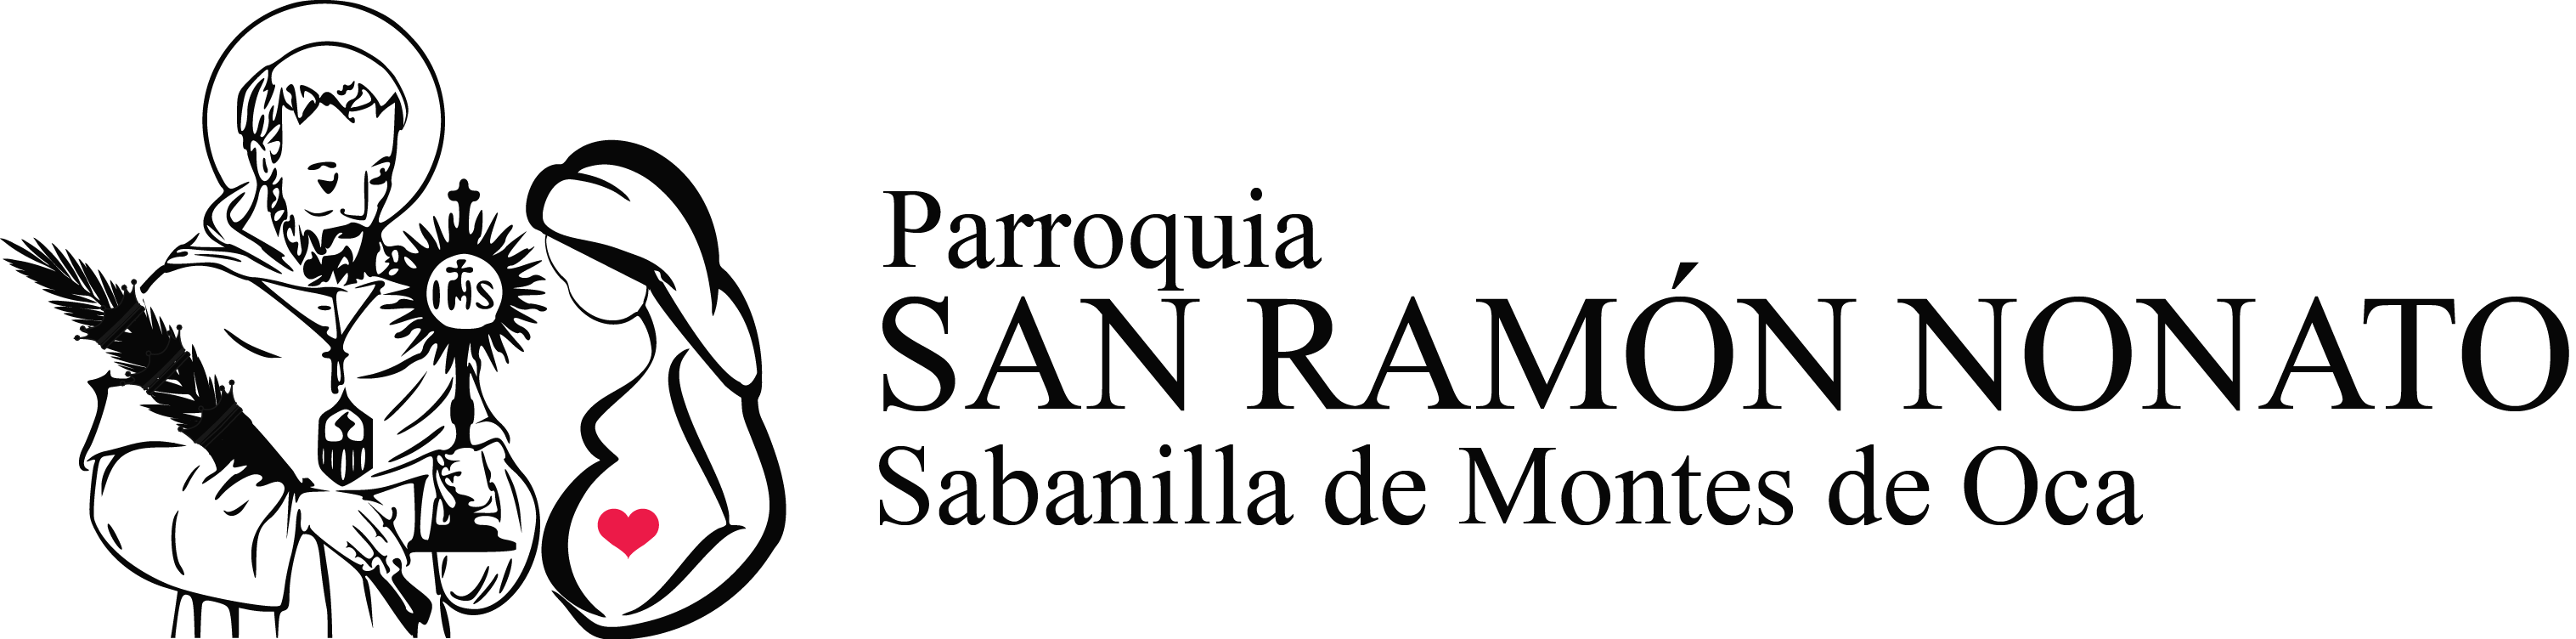 Parroquia San Ramón Nonato